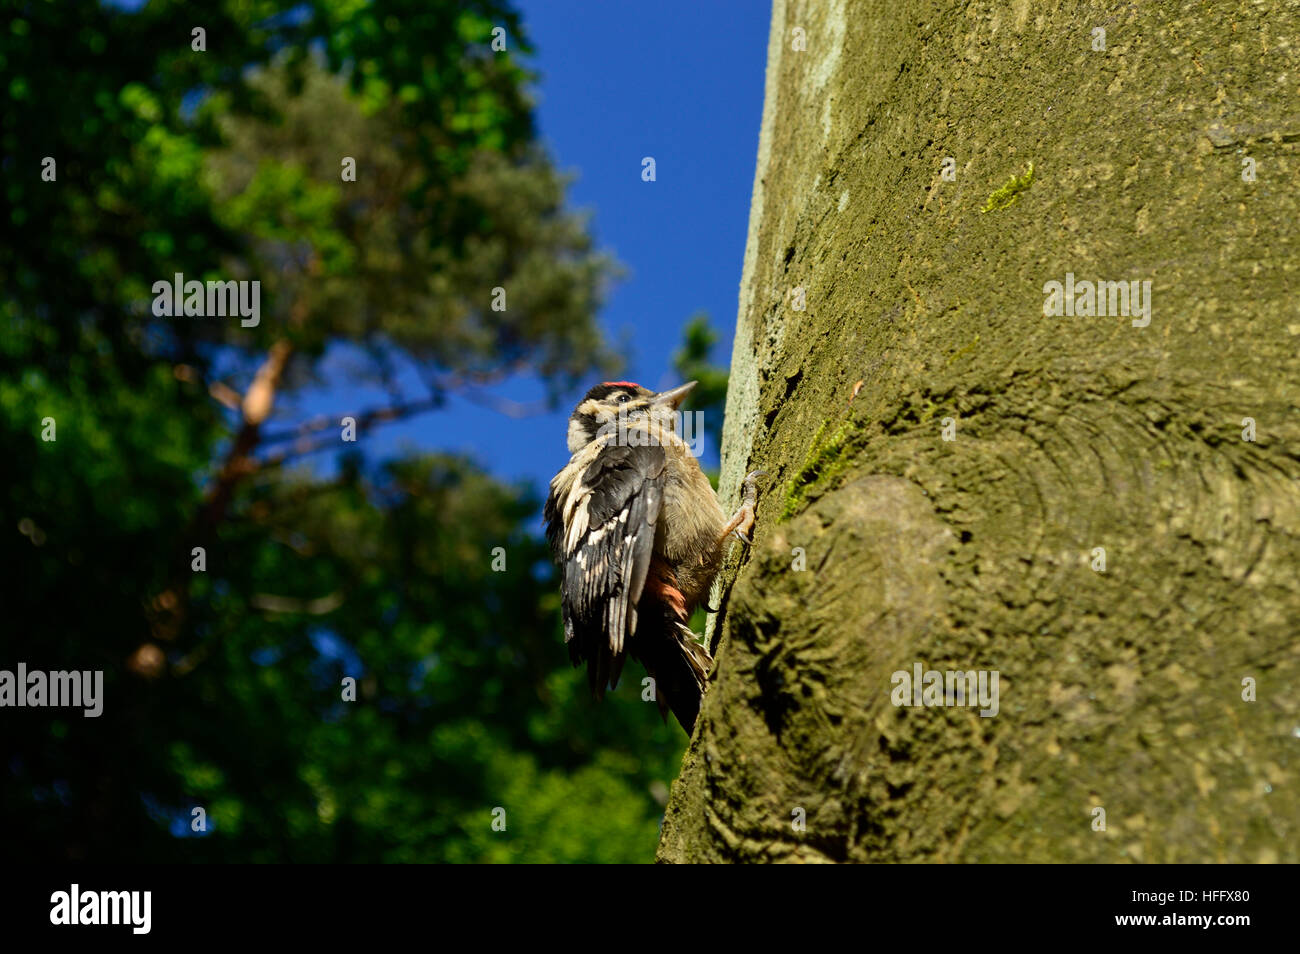 woodpecker tapping on a pine tree worms - Stock Image